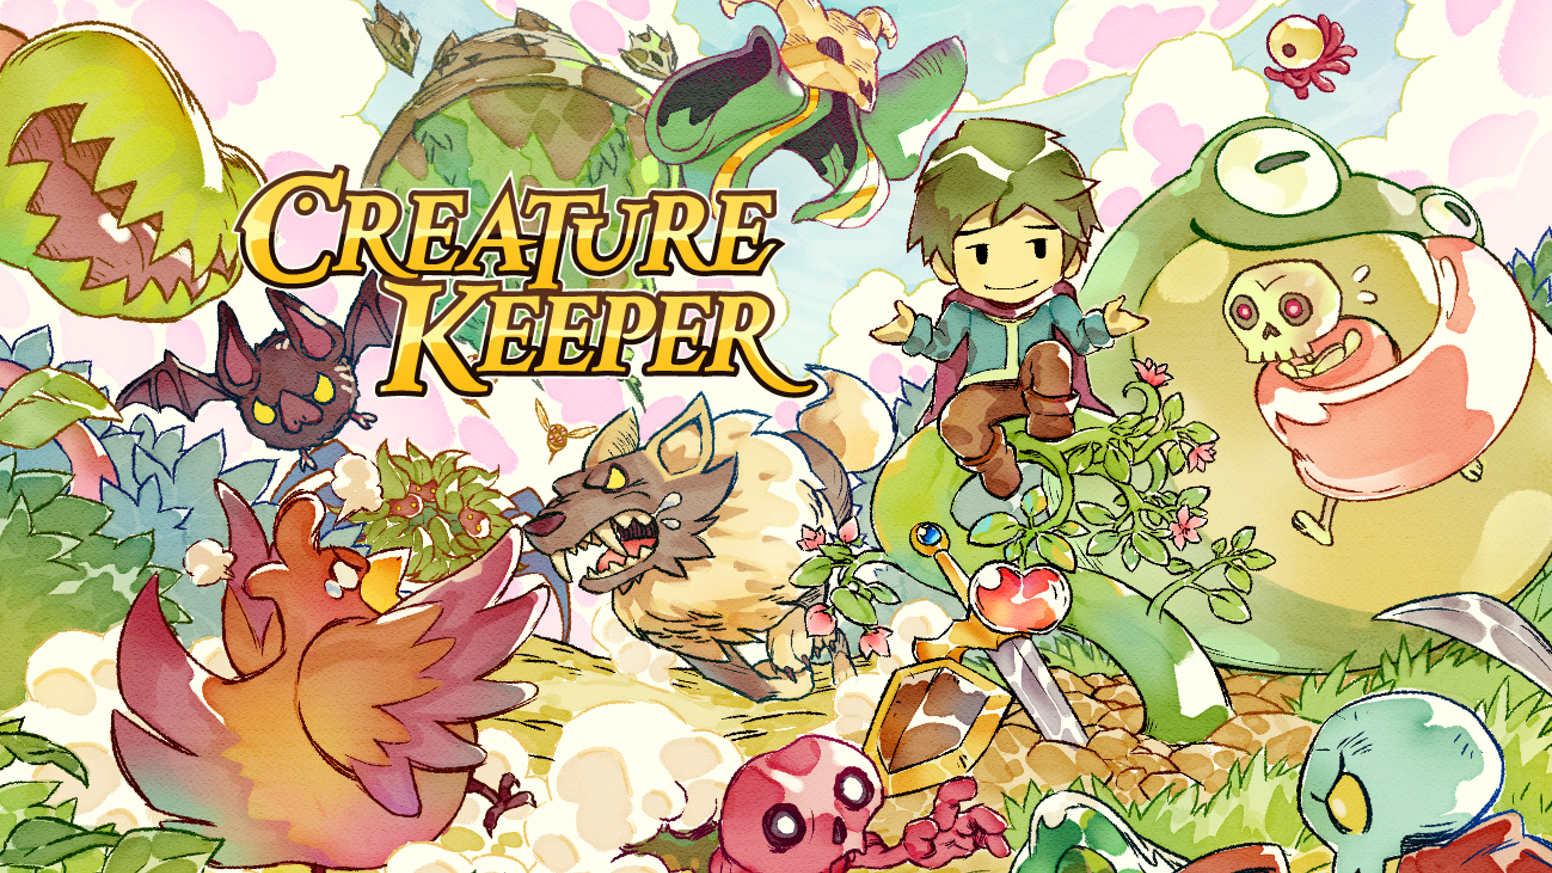 Befriend, raise, and fight alongside creatures in this Action Adventure RPG